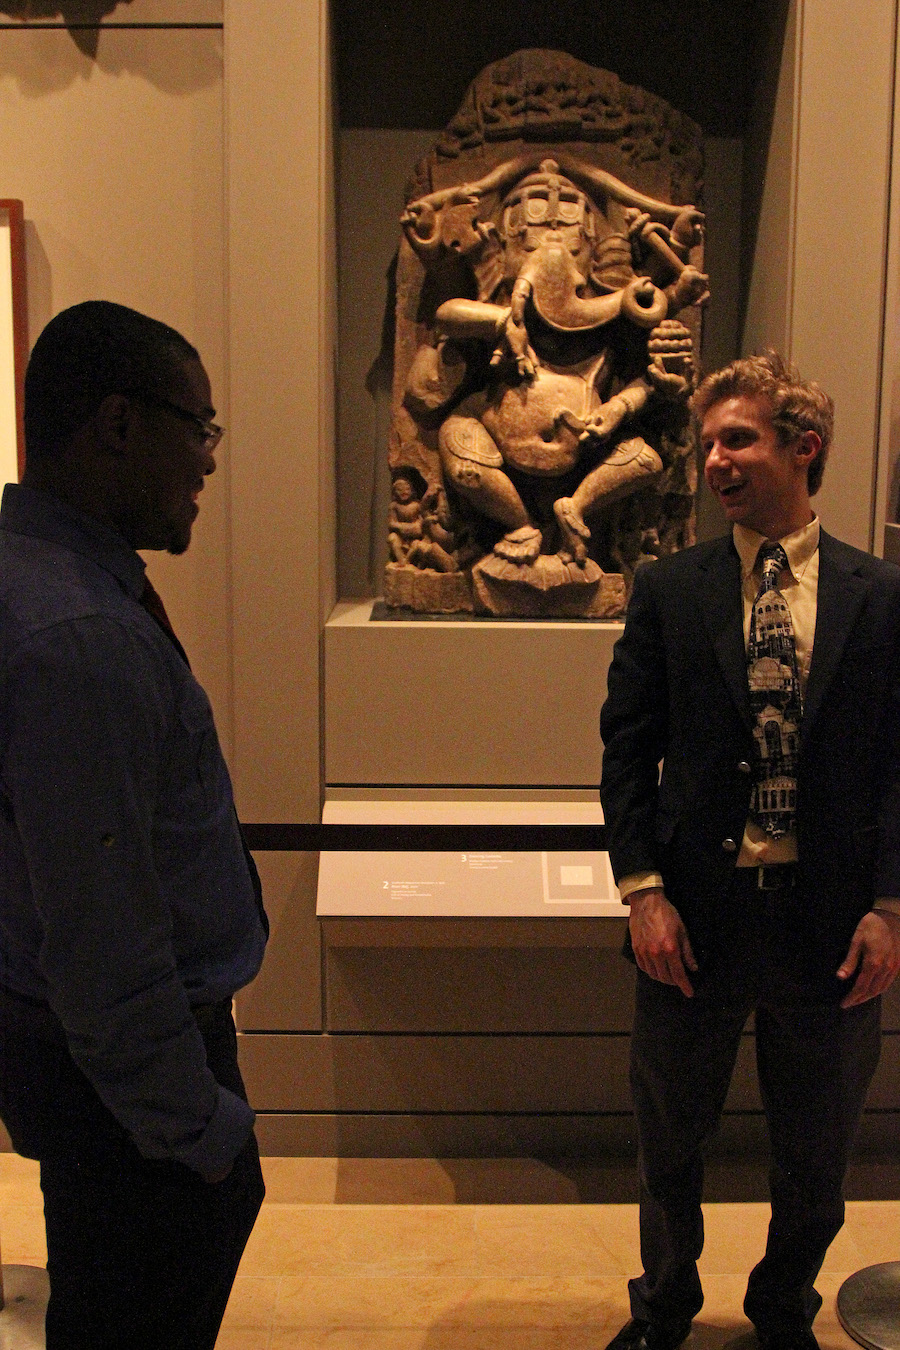 Kokou Akpotou and Ethan Lowenthal at Rubin Art Museum. Silley Circuits: The Silicon Alley Network.